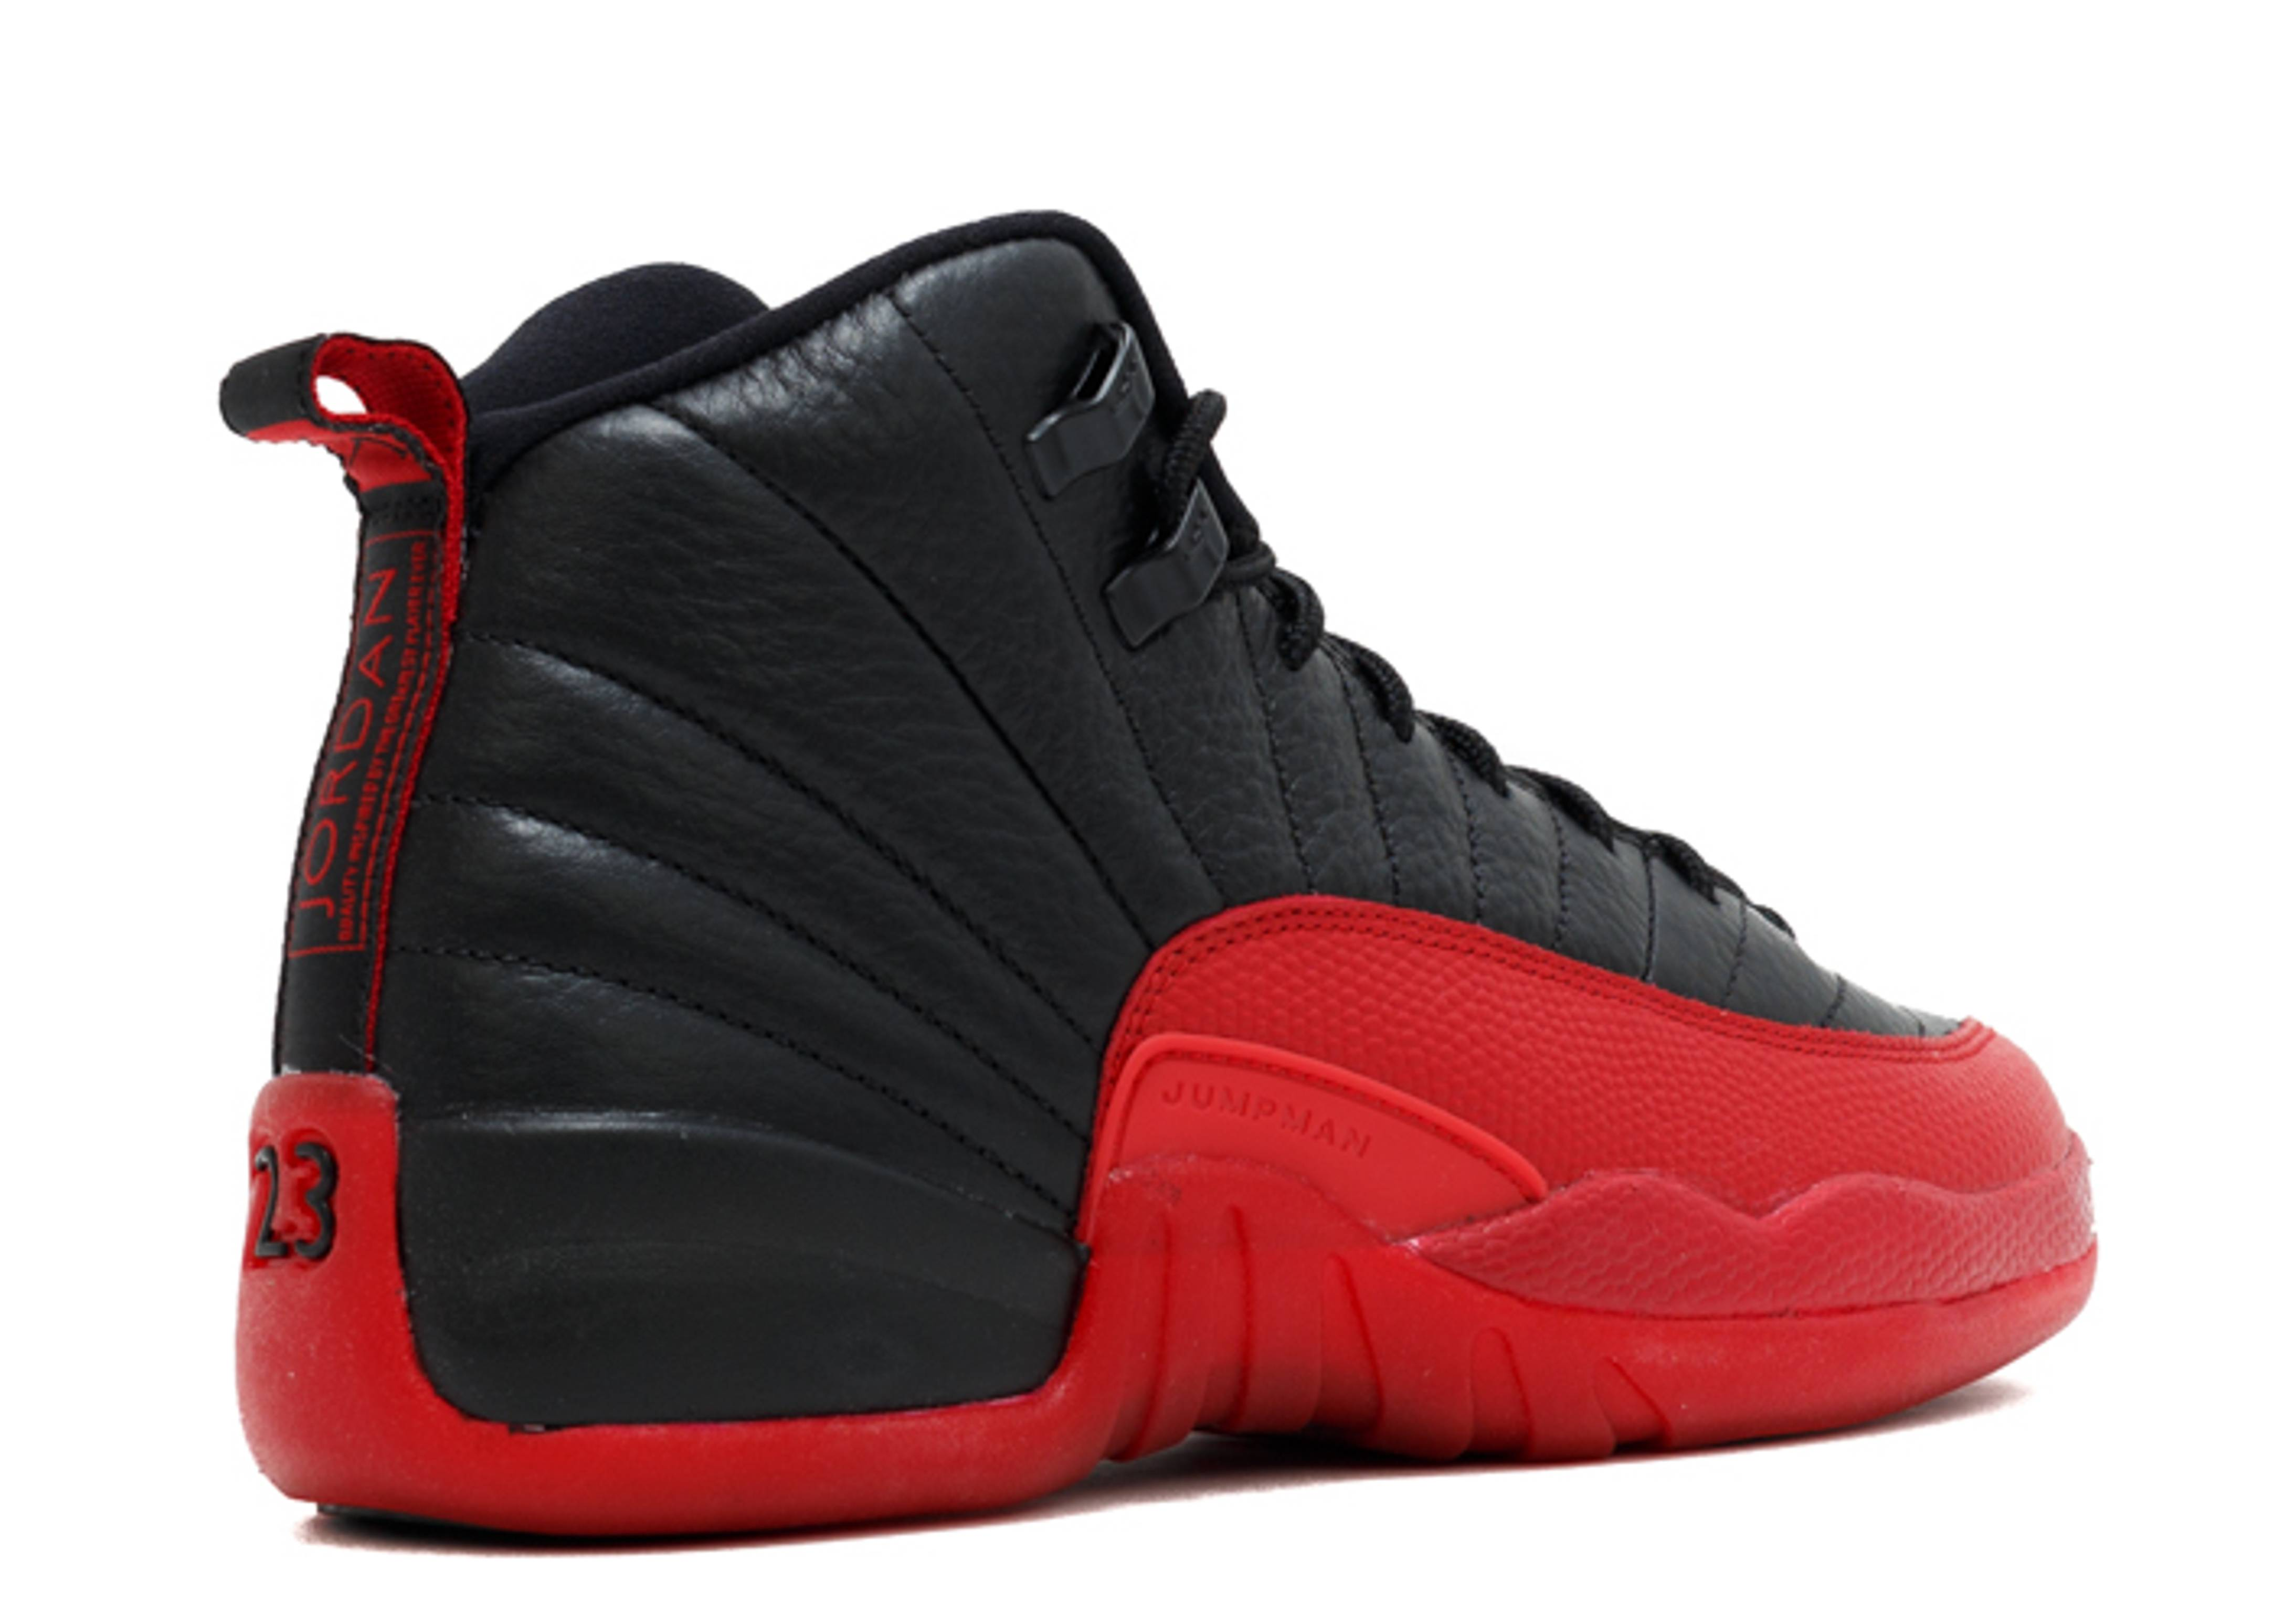 625a52e6fddcd3 Air Jordan 12 Retro Bg (gs)